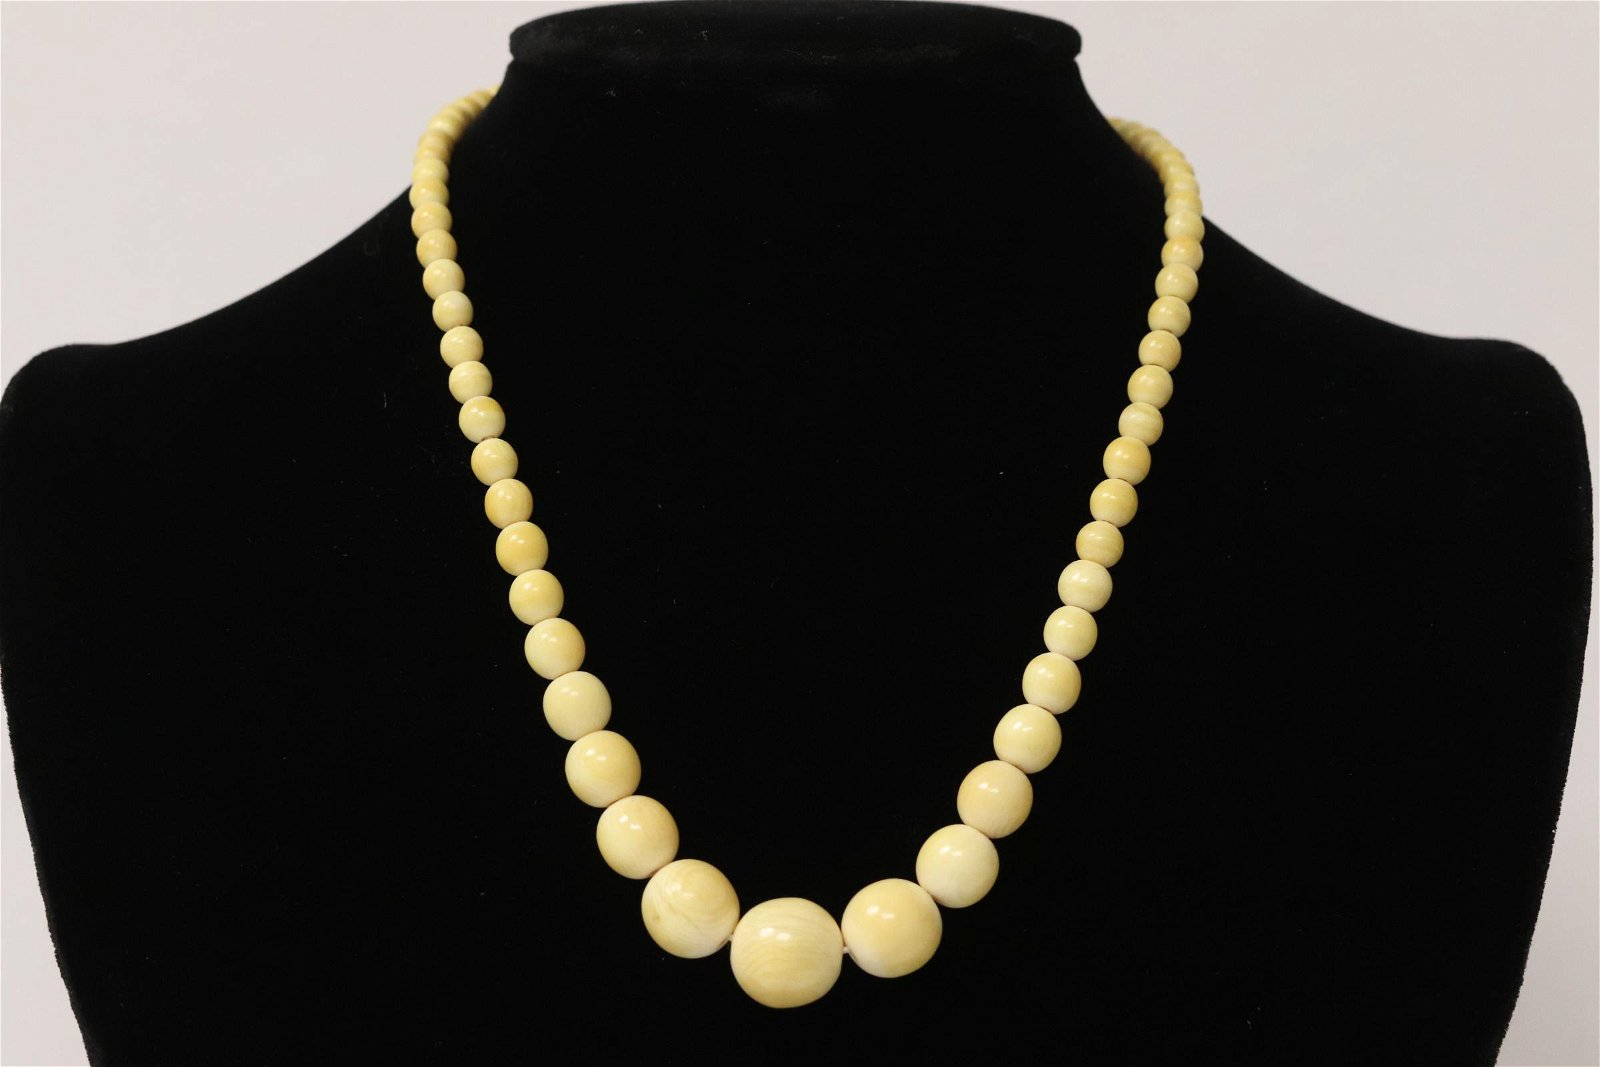 Chinese antique bone bead necklace